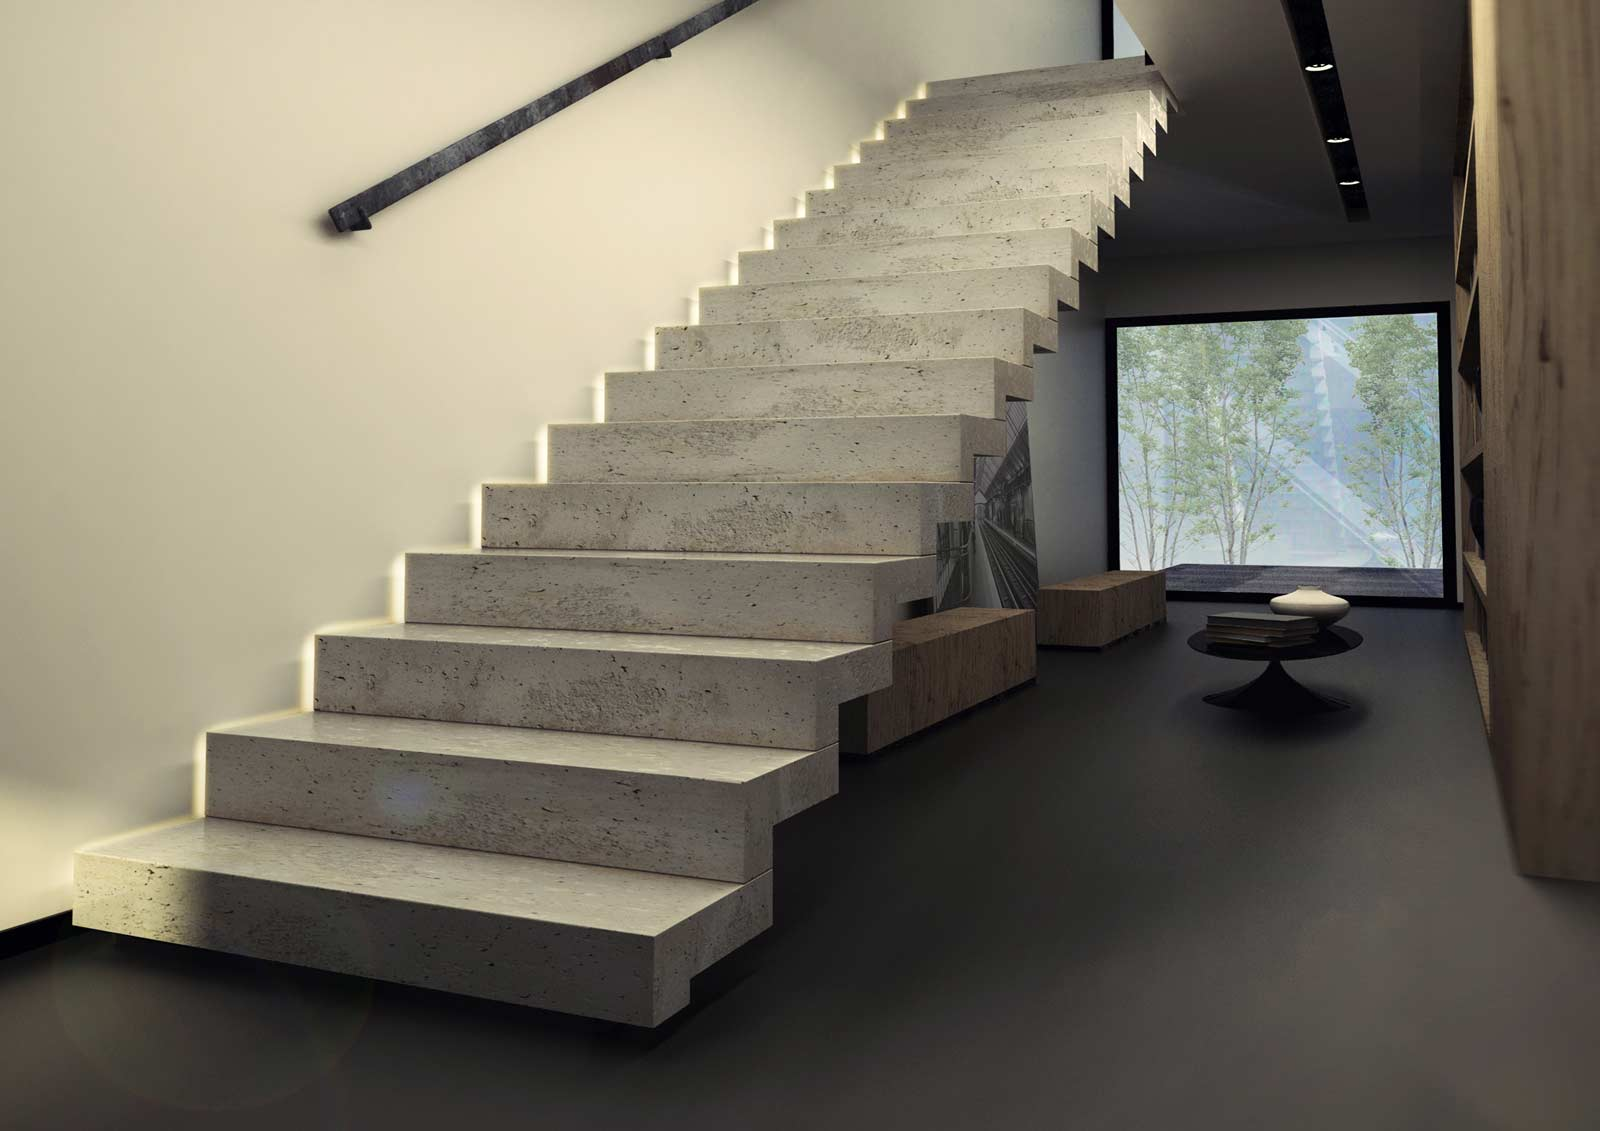 Le top 10 des escaliers droits design le blog de loftboutik - Escalier design beton ...